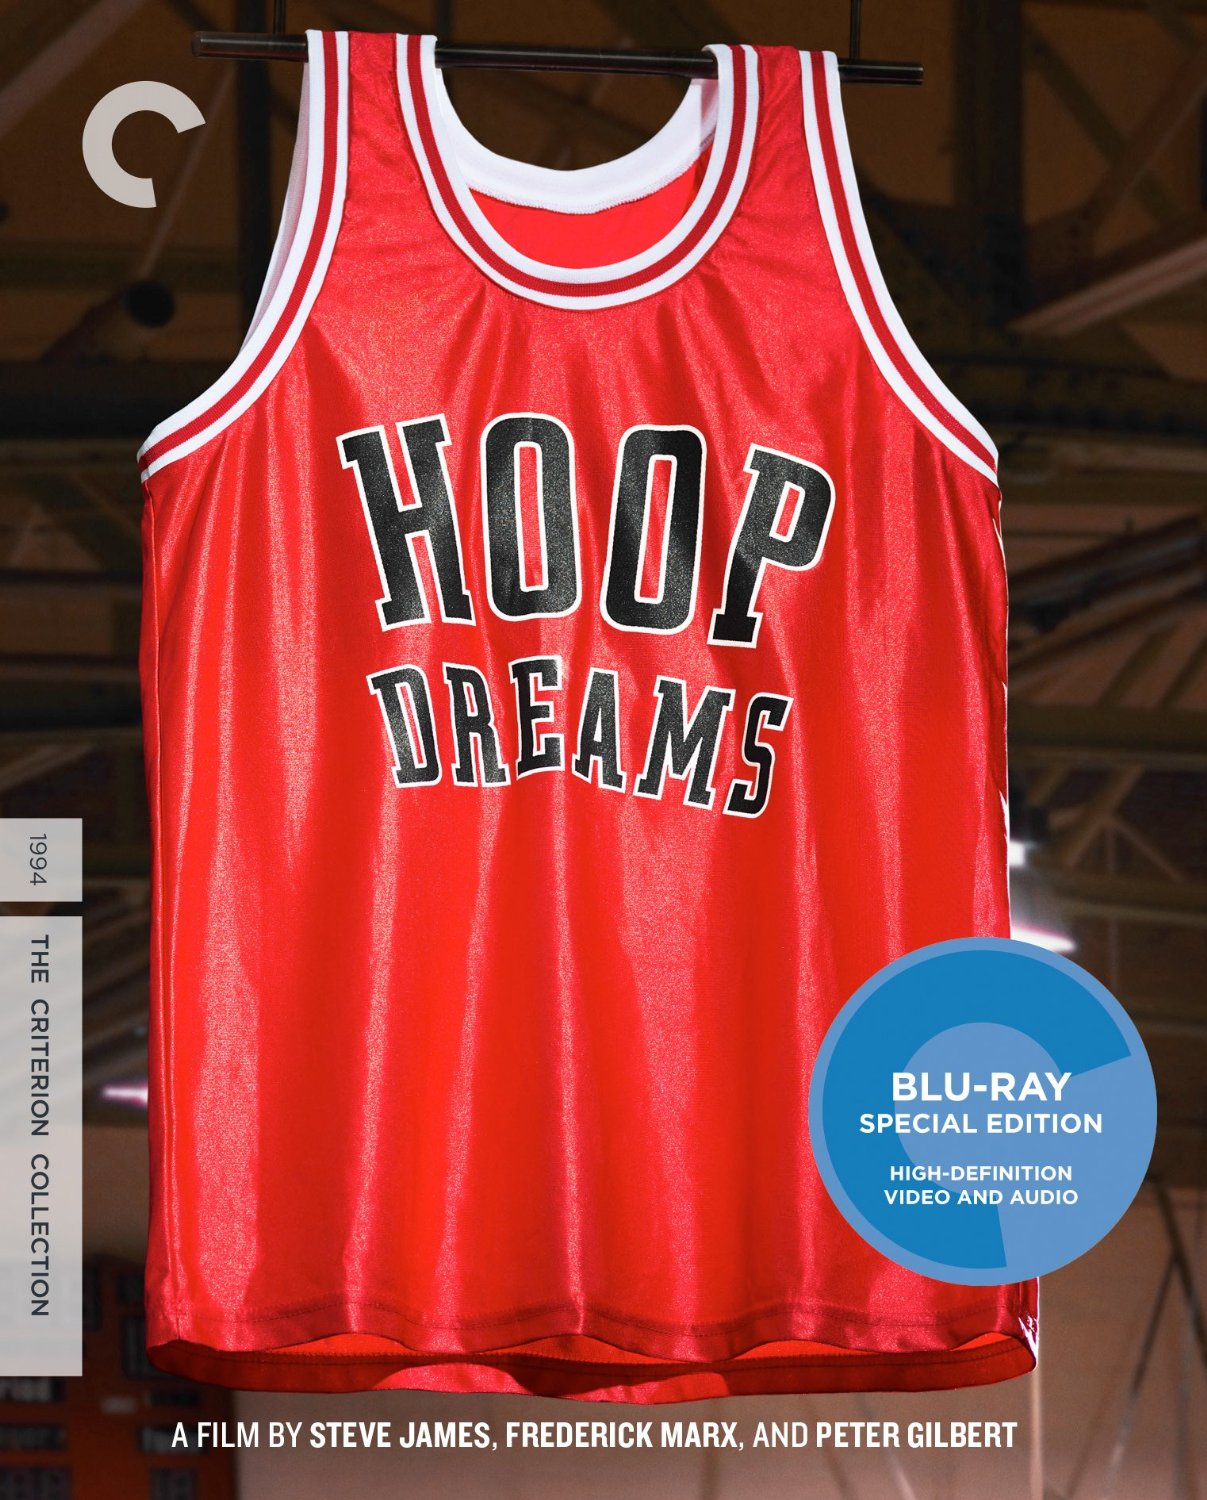 hoop dreams blu ray review slant magazine